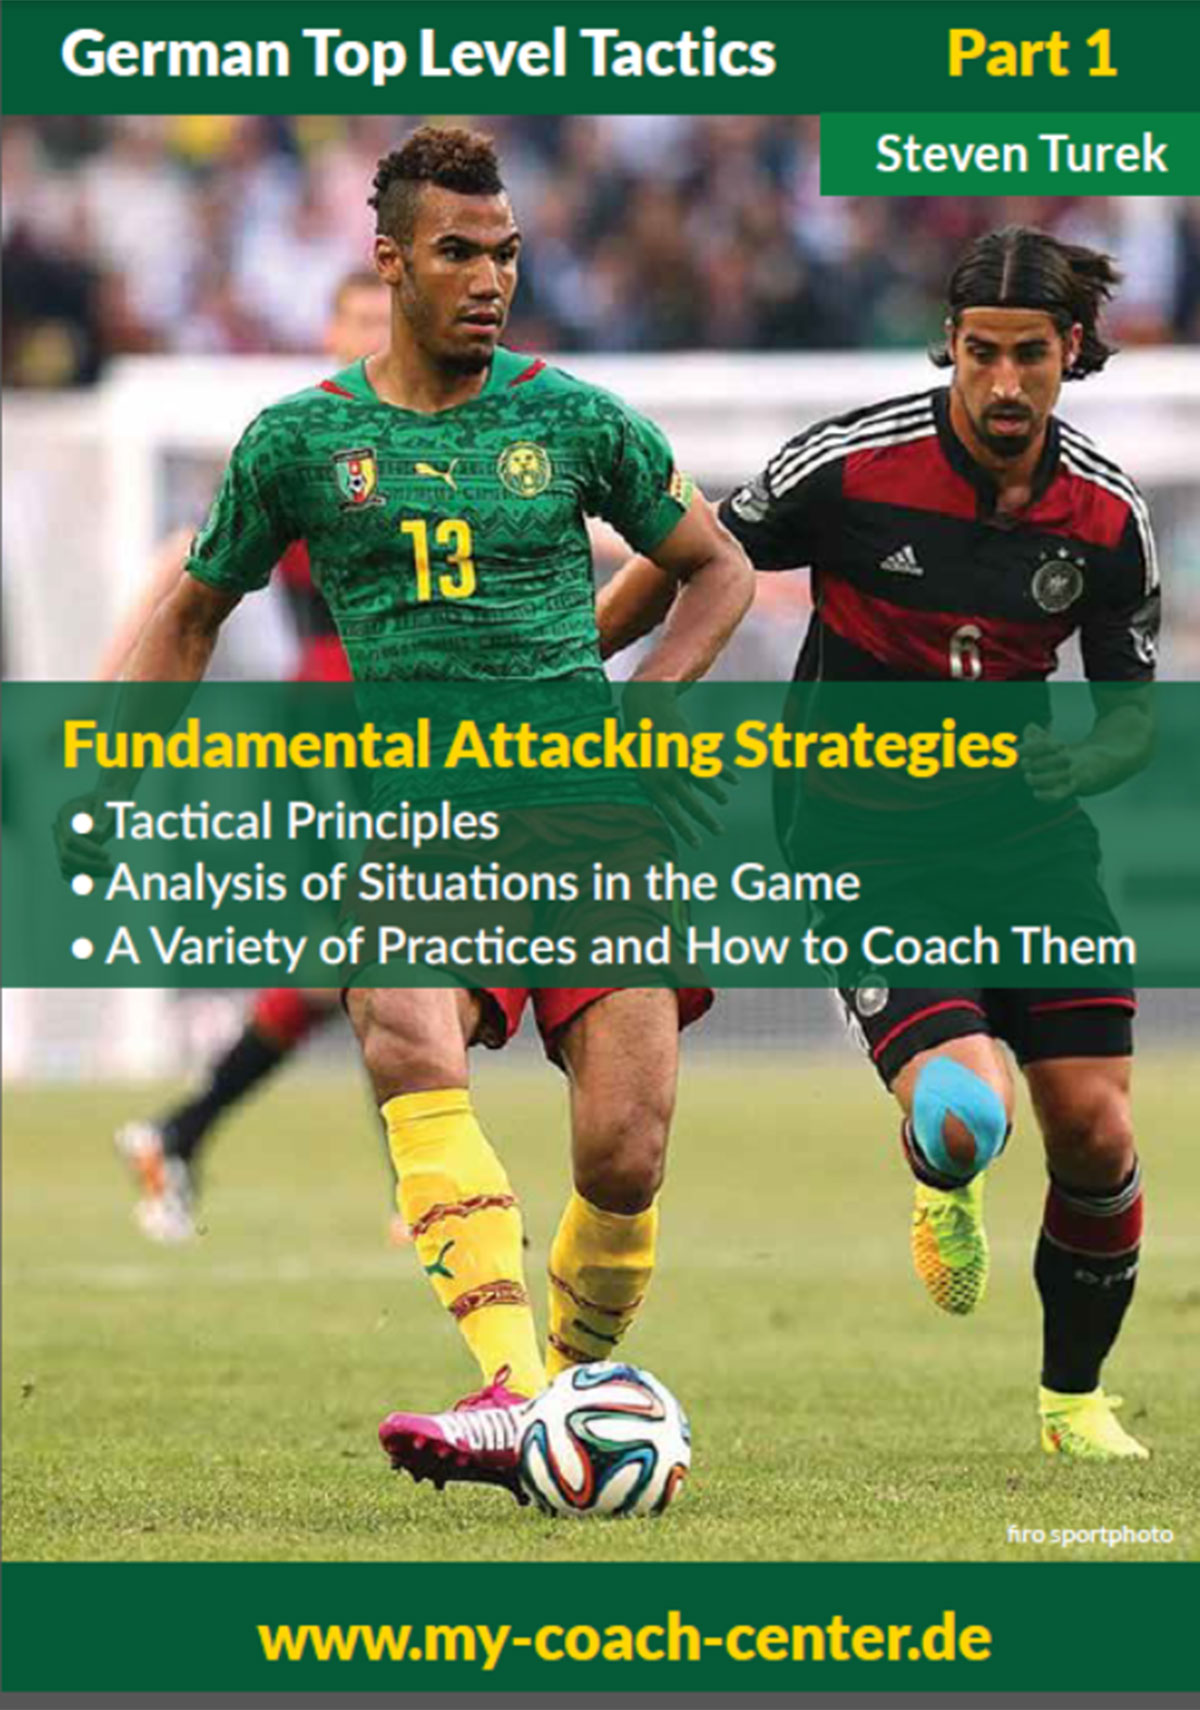 Cover-Soccer-tactic-1-1200